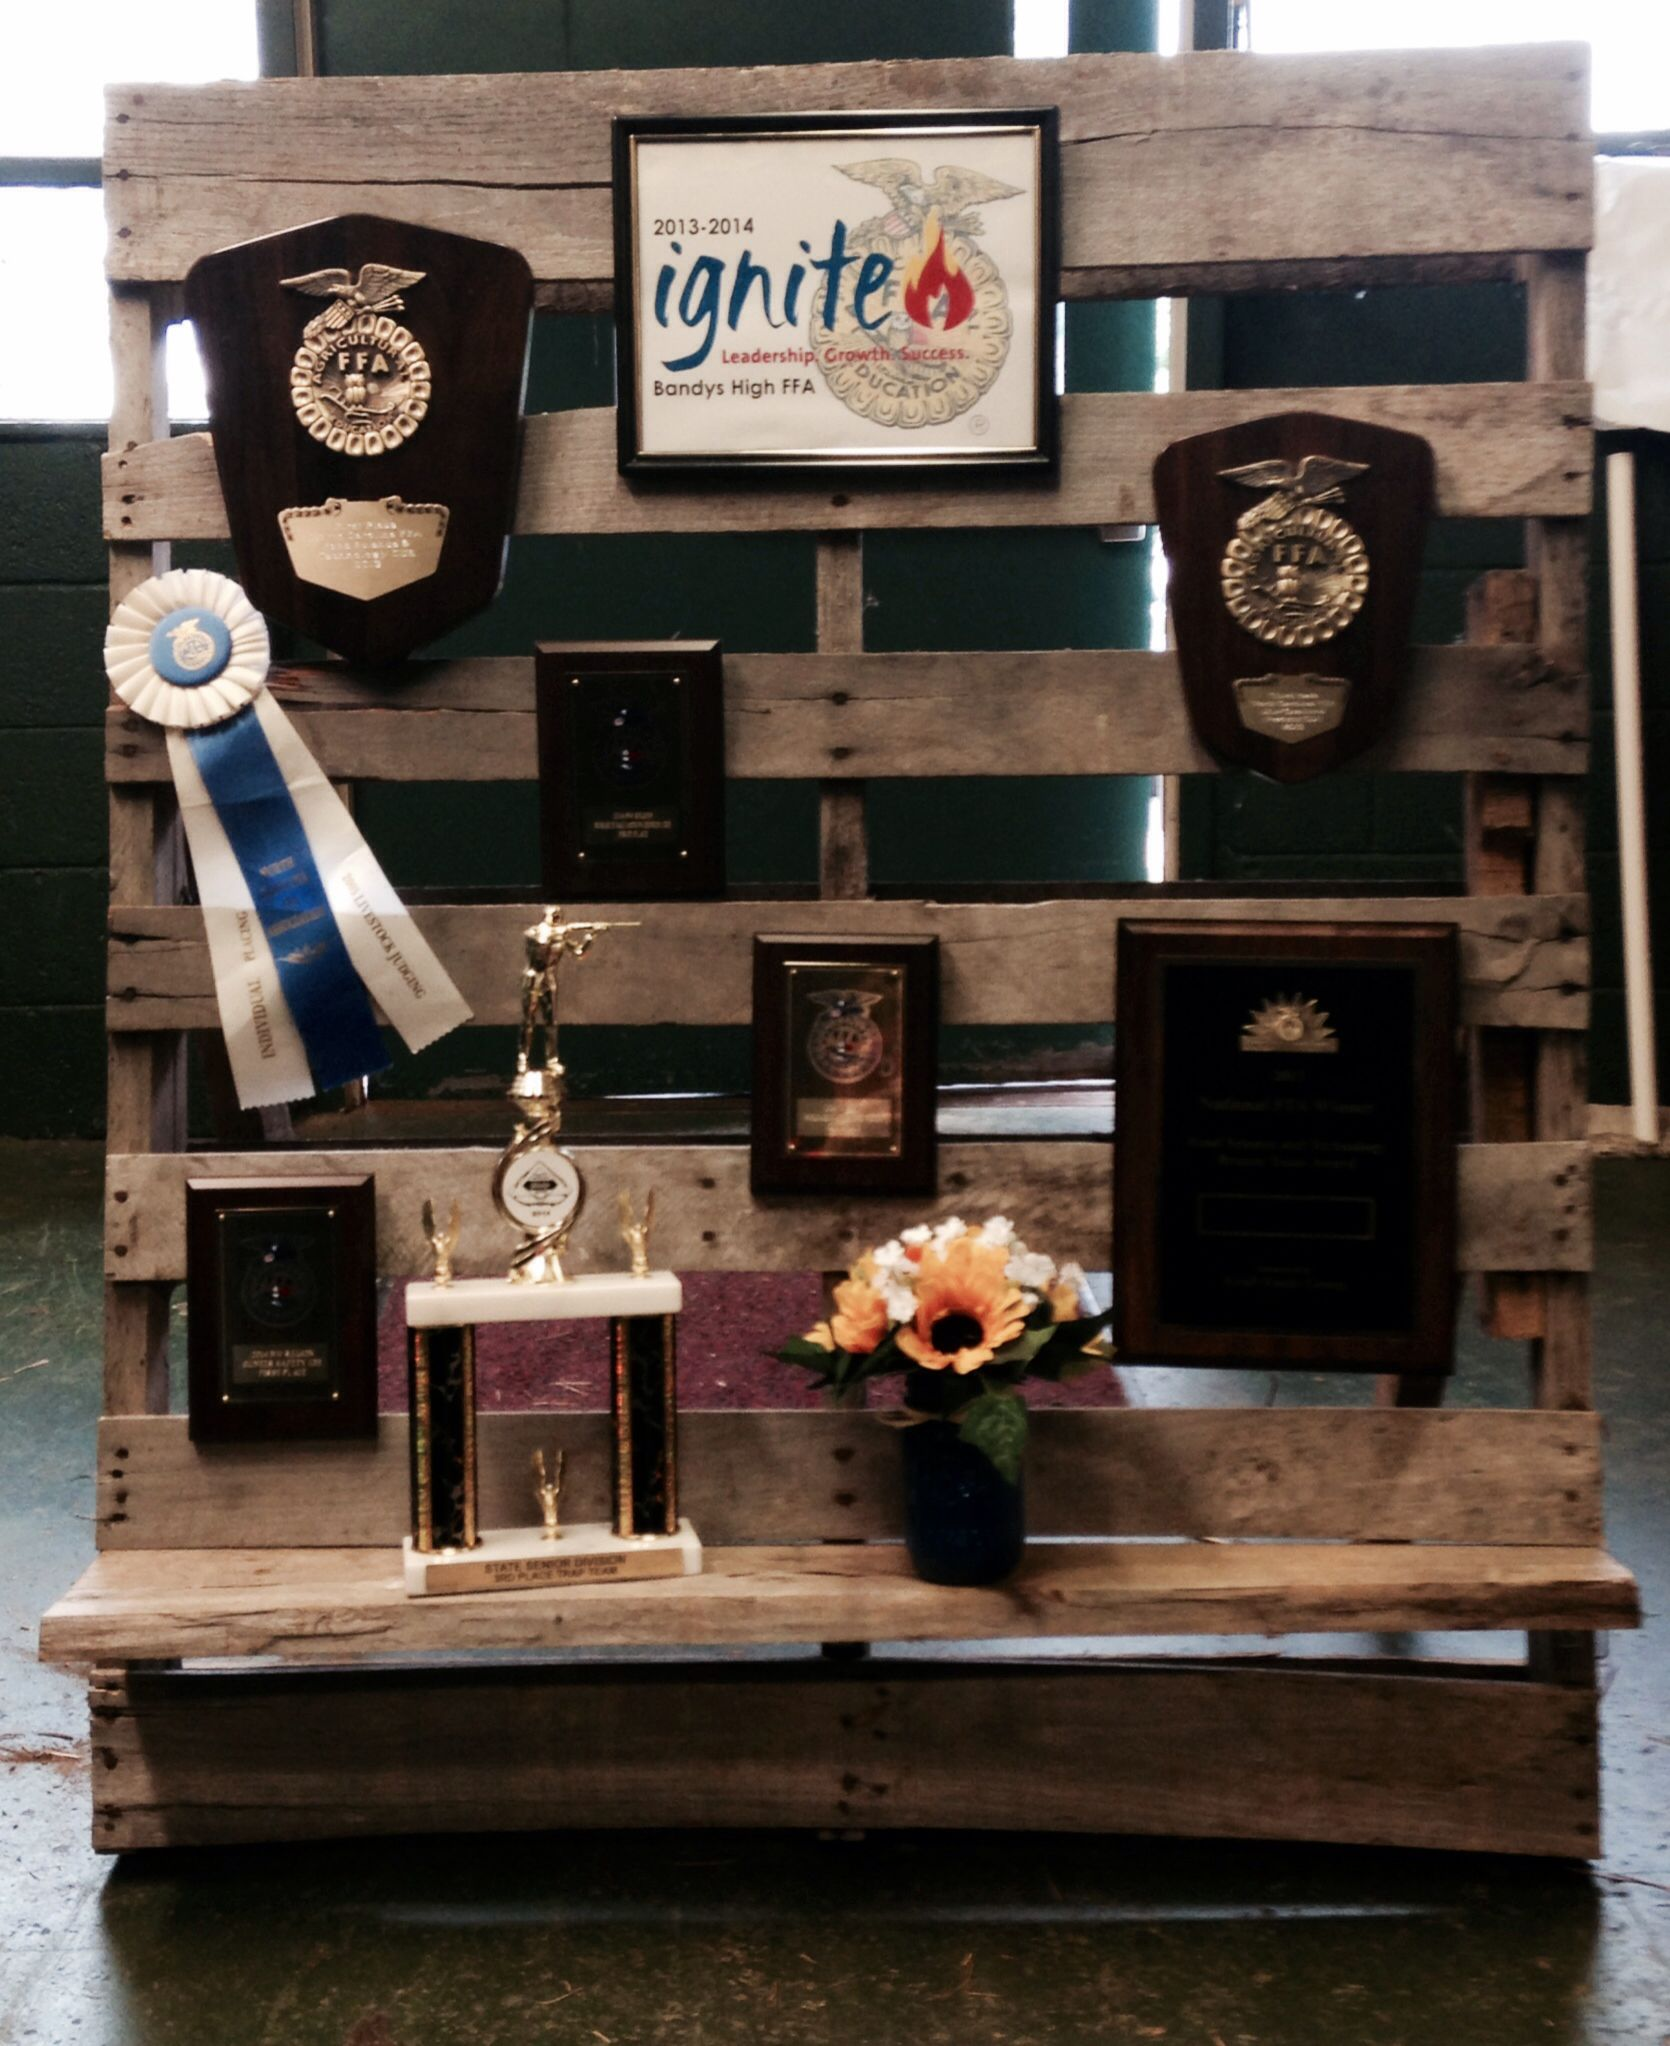 ffa award banquet chapter awards display for welcome table